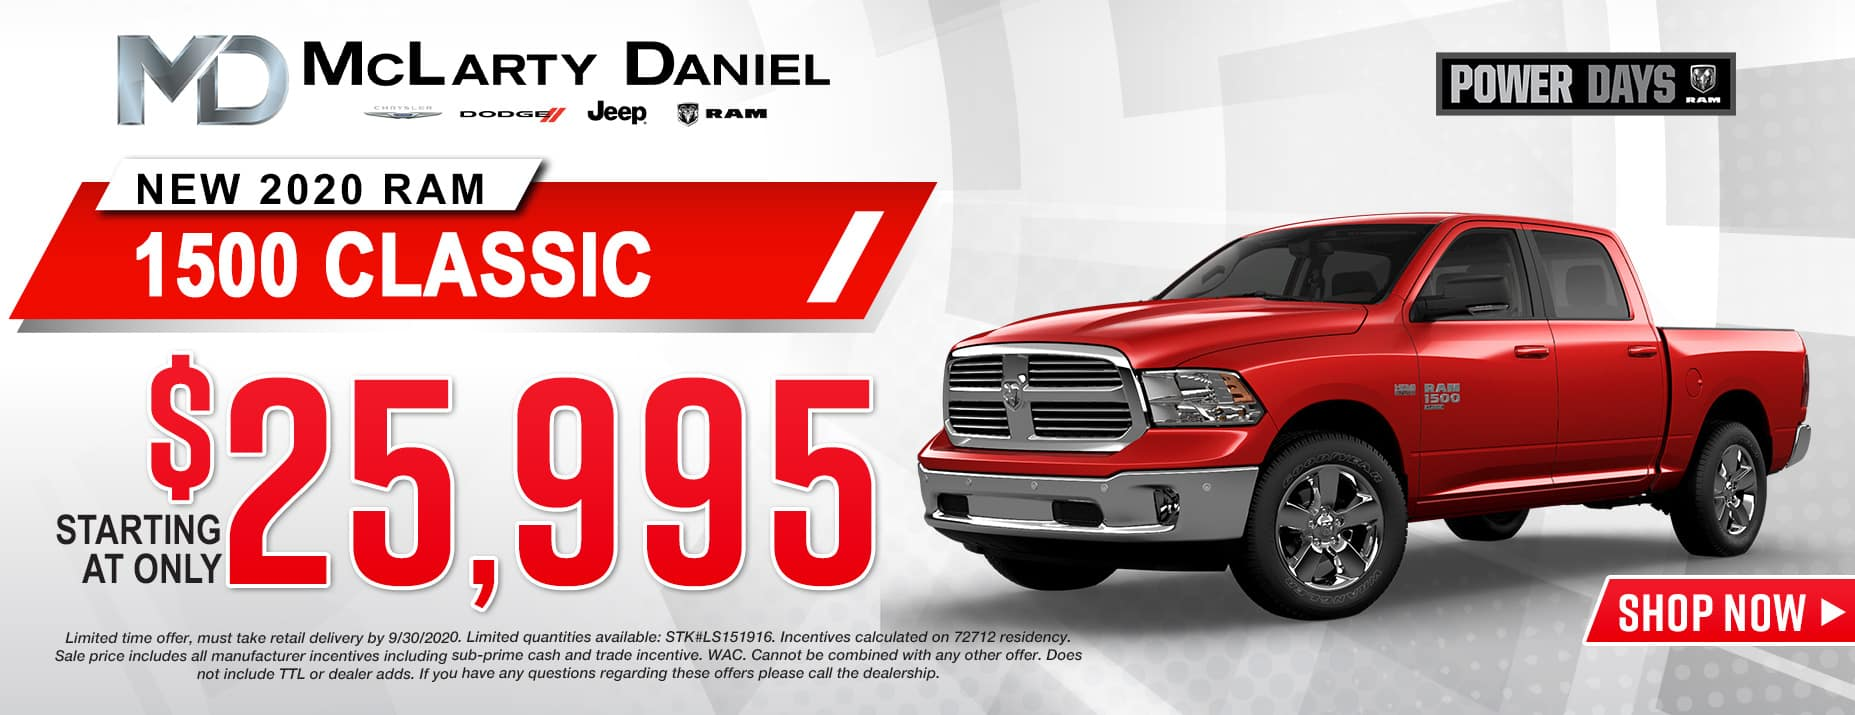 2020 RAM CLASSIC 1500 STARTING AT ONLY $25,995!